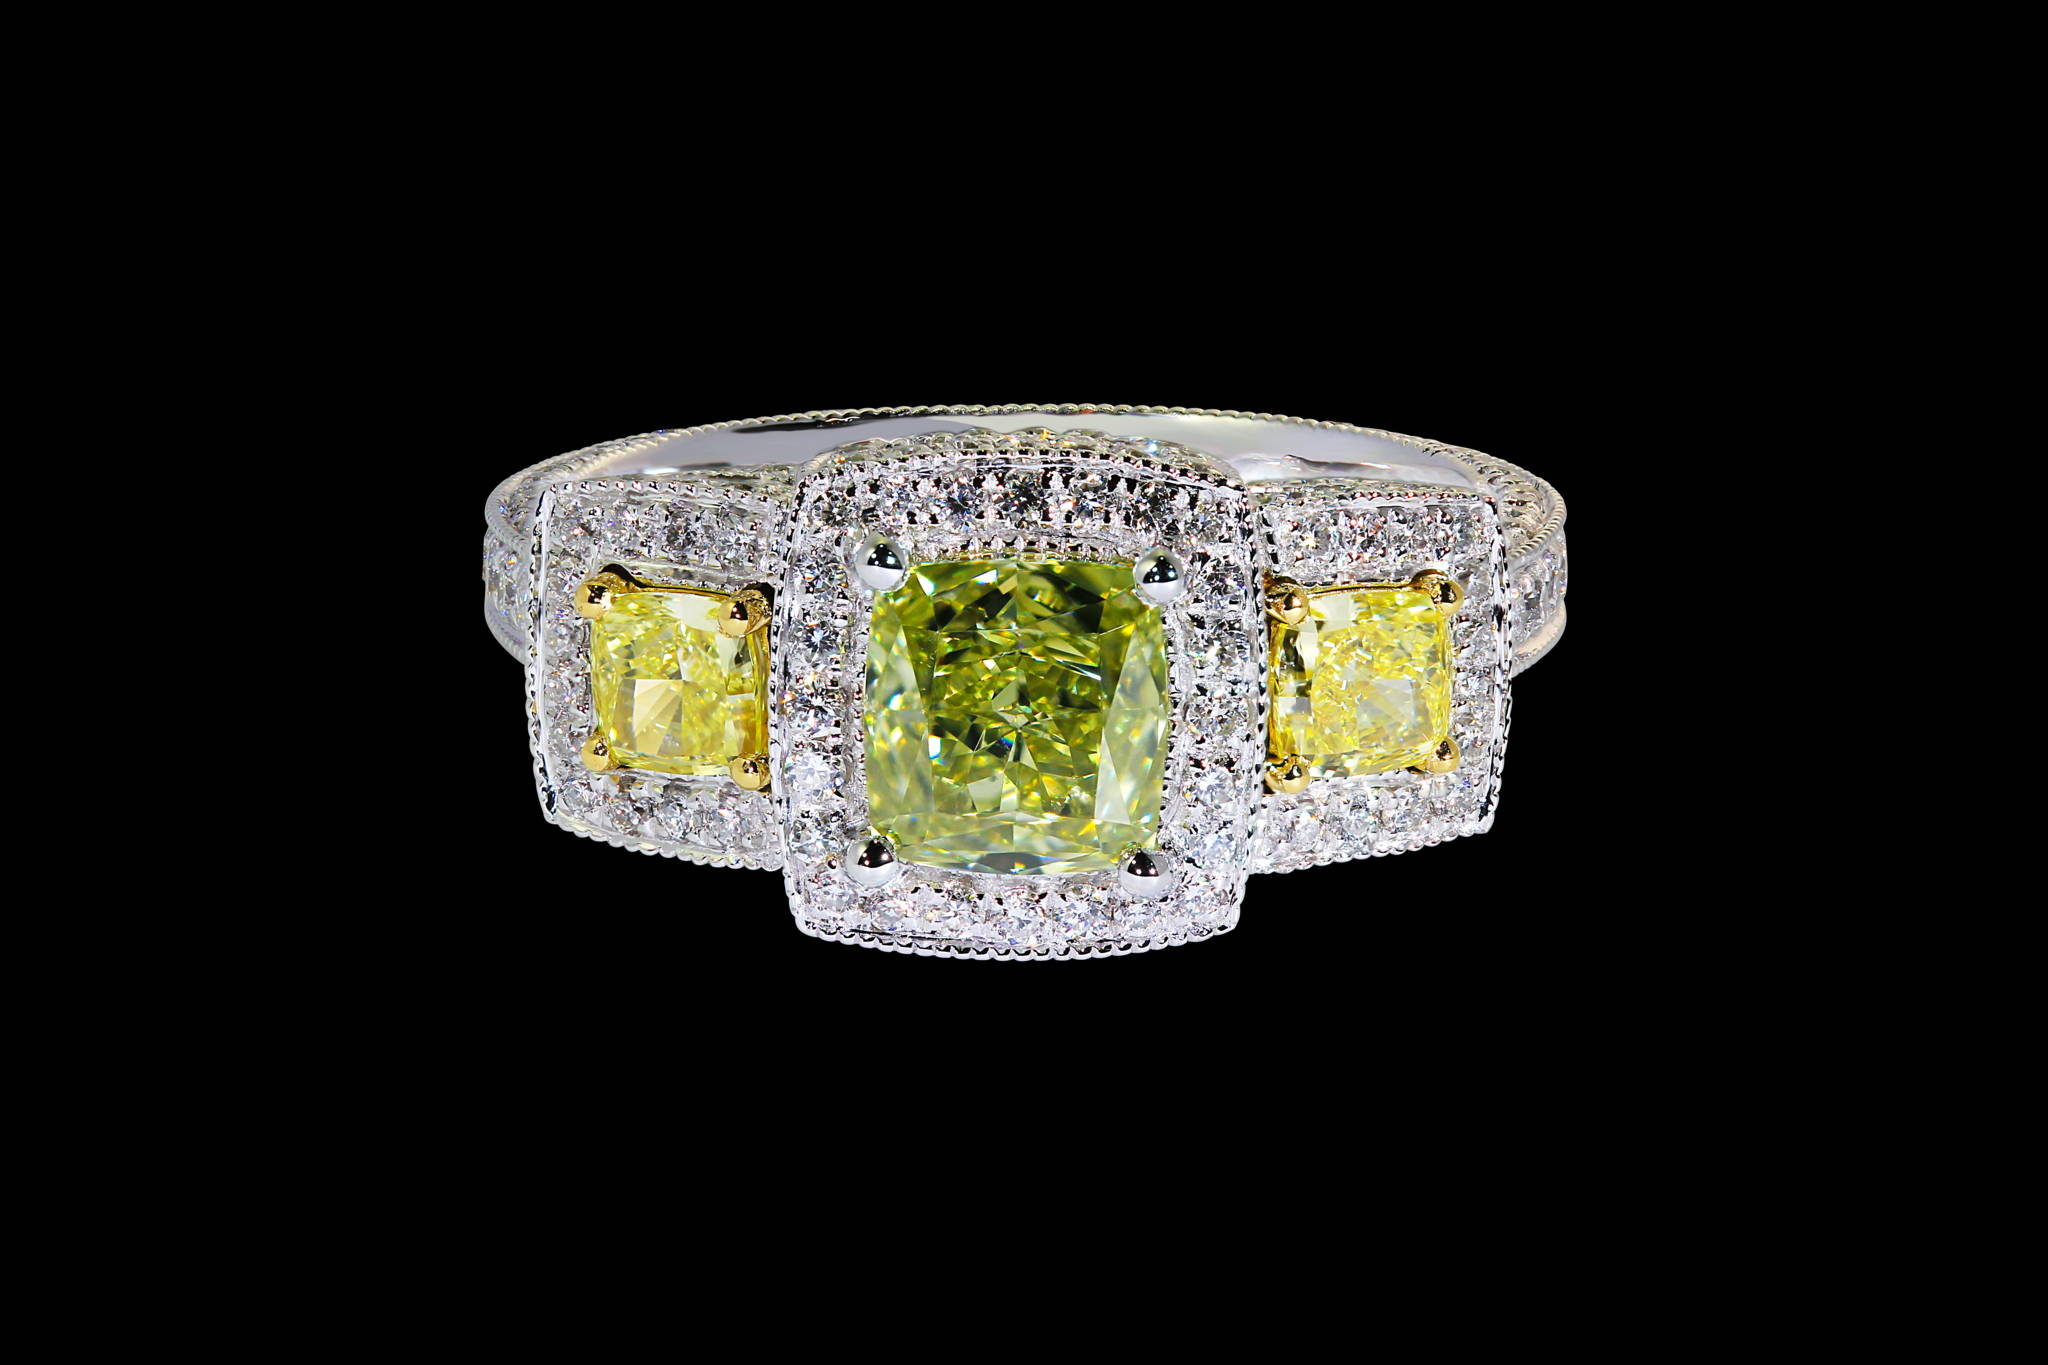 Highly Detailed Natural Colored Diamond Ring front view